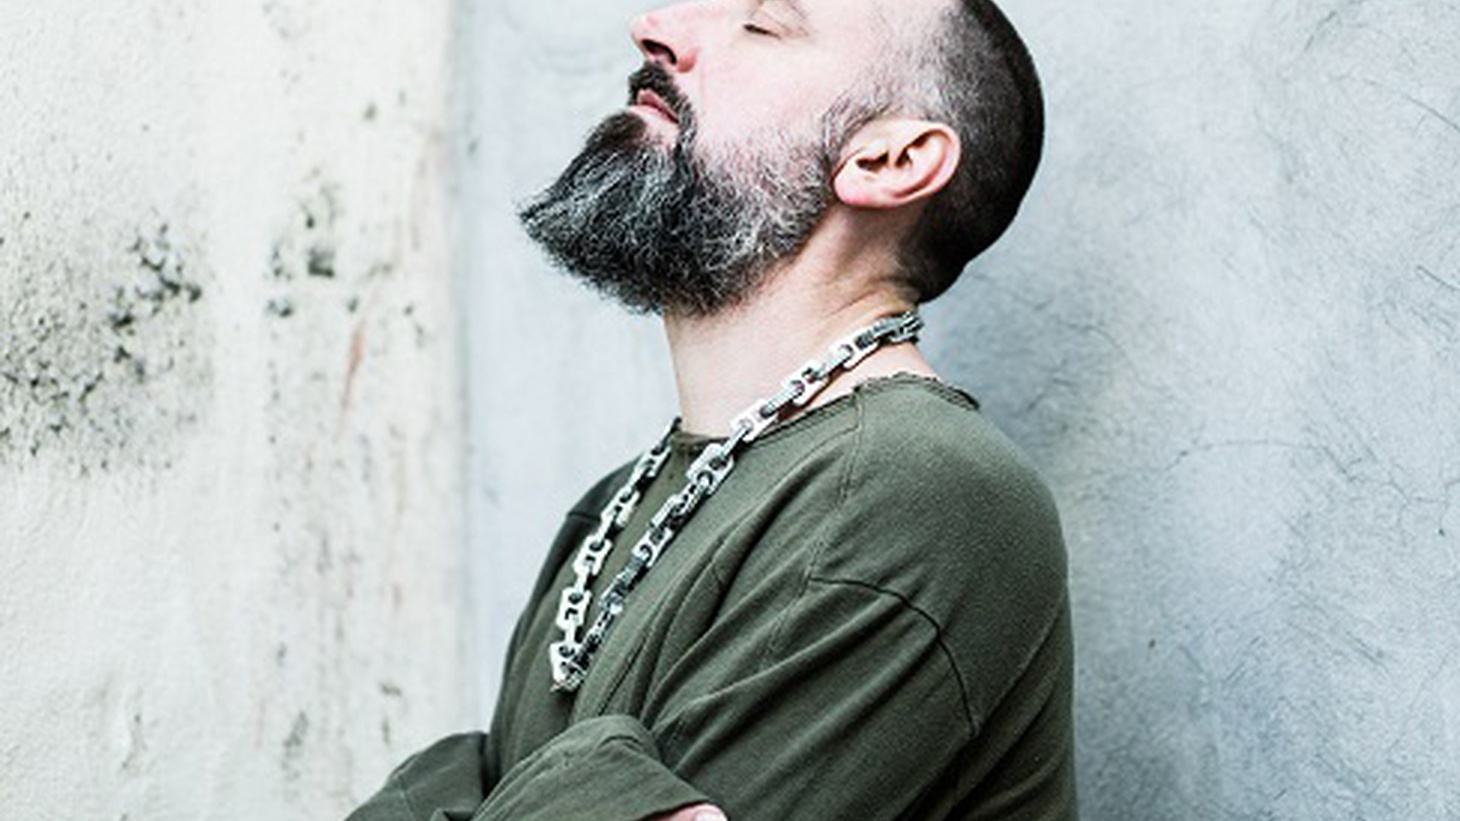 British singer/songwriter/producer Fin Greenall has long been a KCRW favorite for his polymath approach to making music. His latest is a mysterious dub reworking of his popular Hard Believeralbum of last year, giving radical new textures to his darkly beautiful songs.